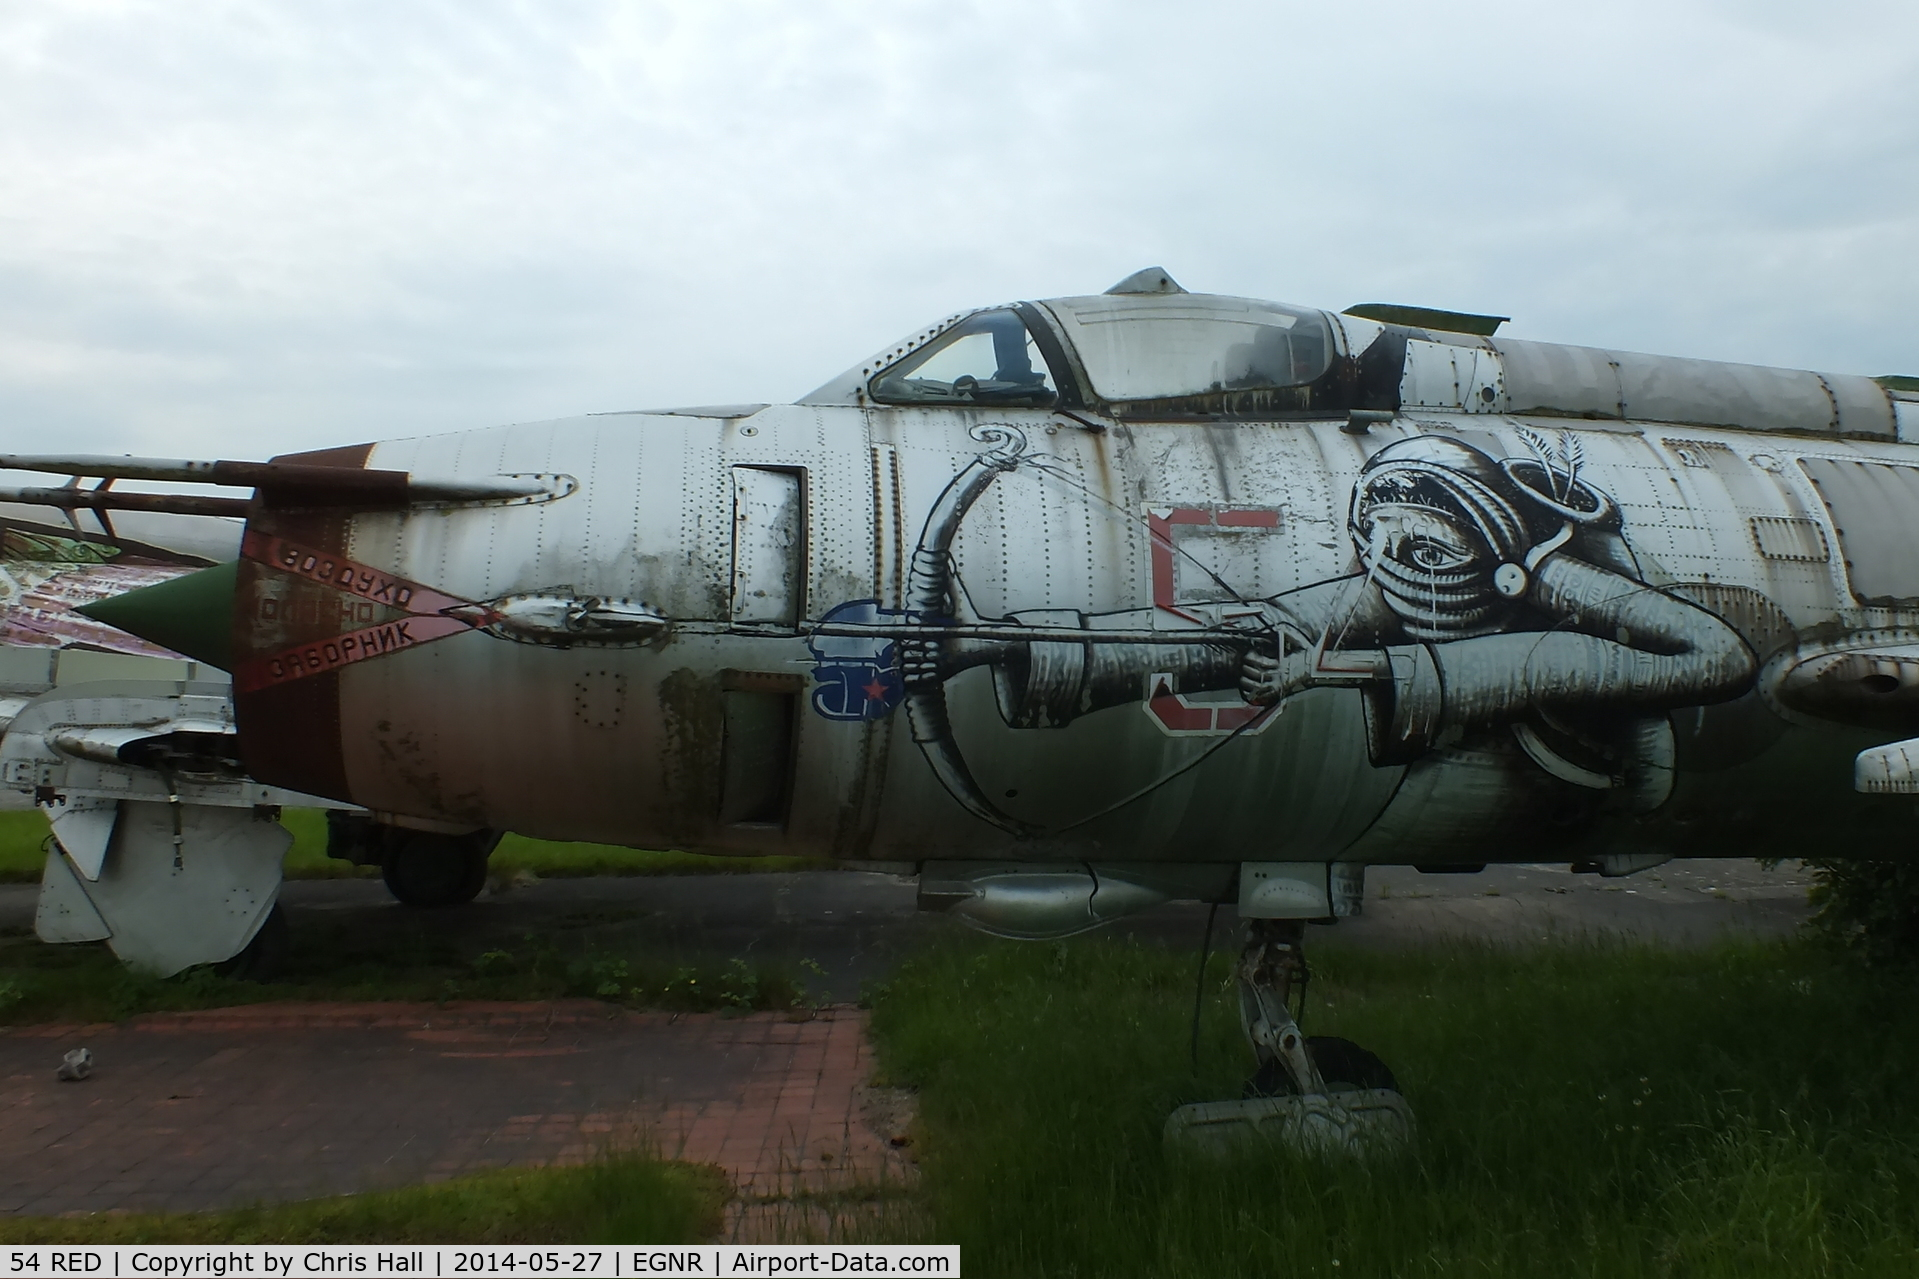 54 RED, Sukhoi Su-17M C/N 69004, close up of the nose art